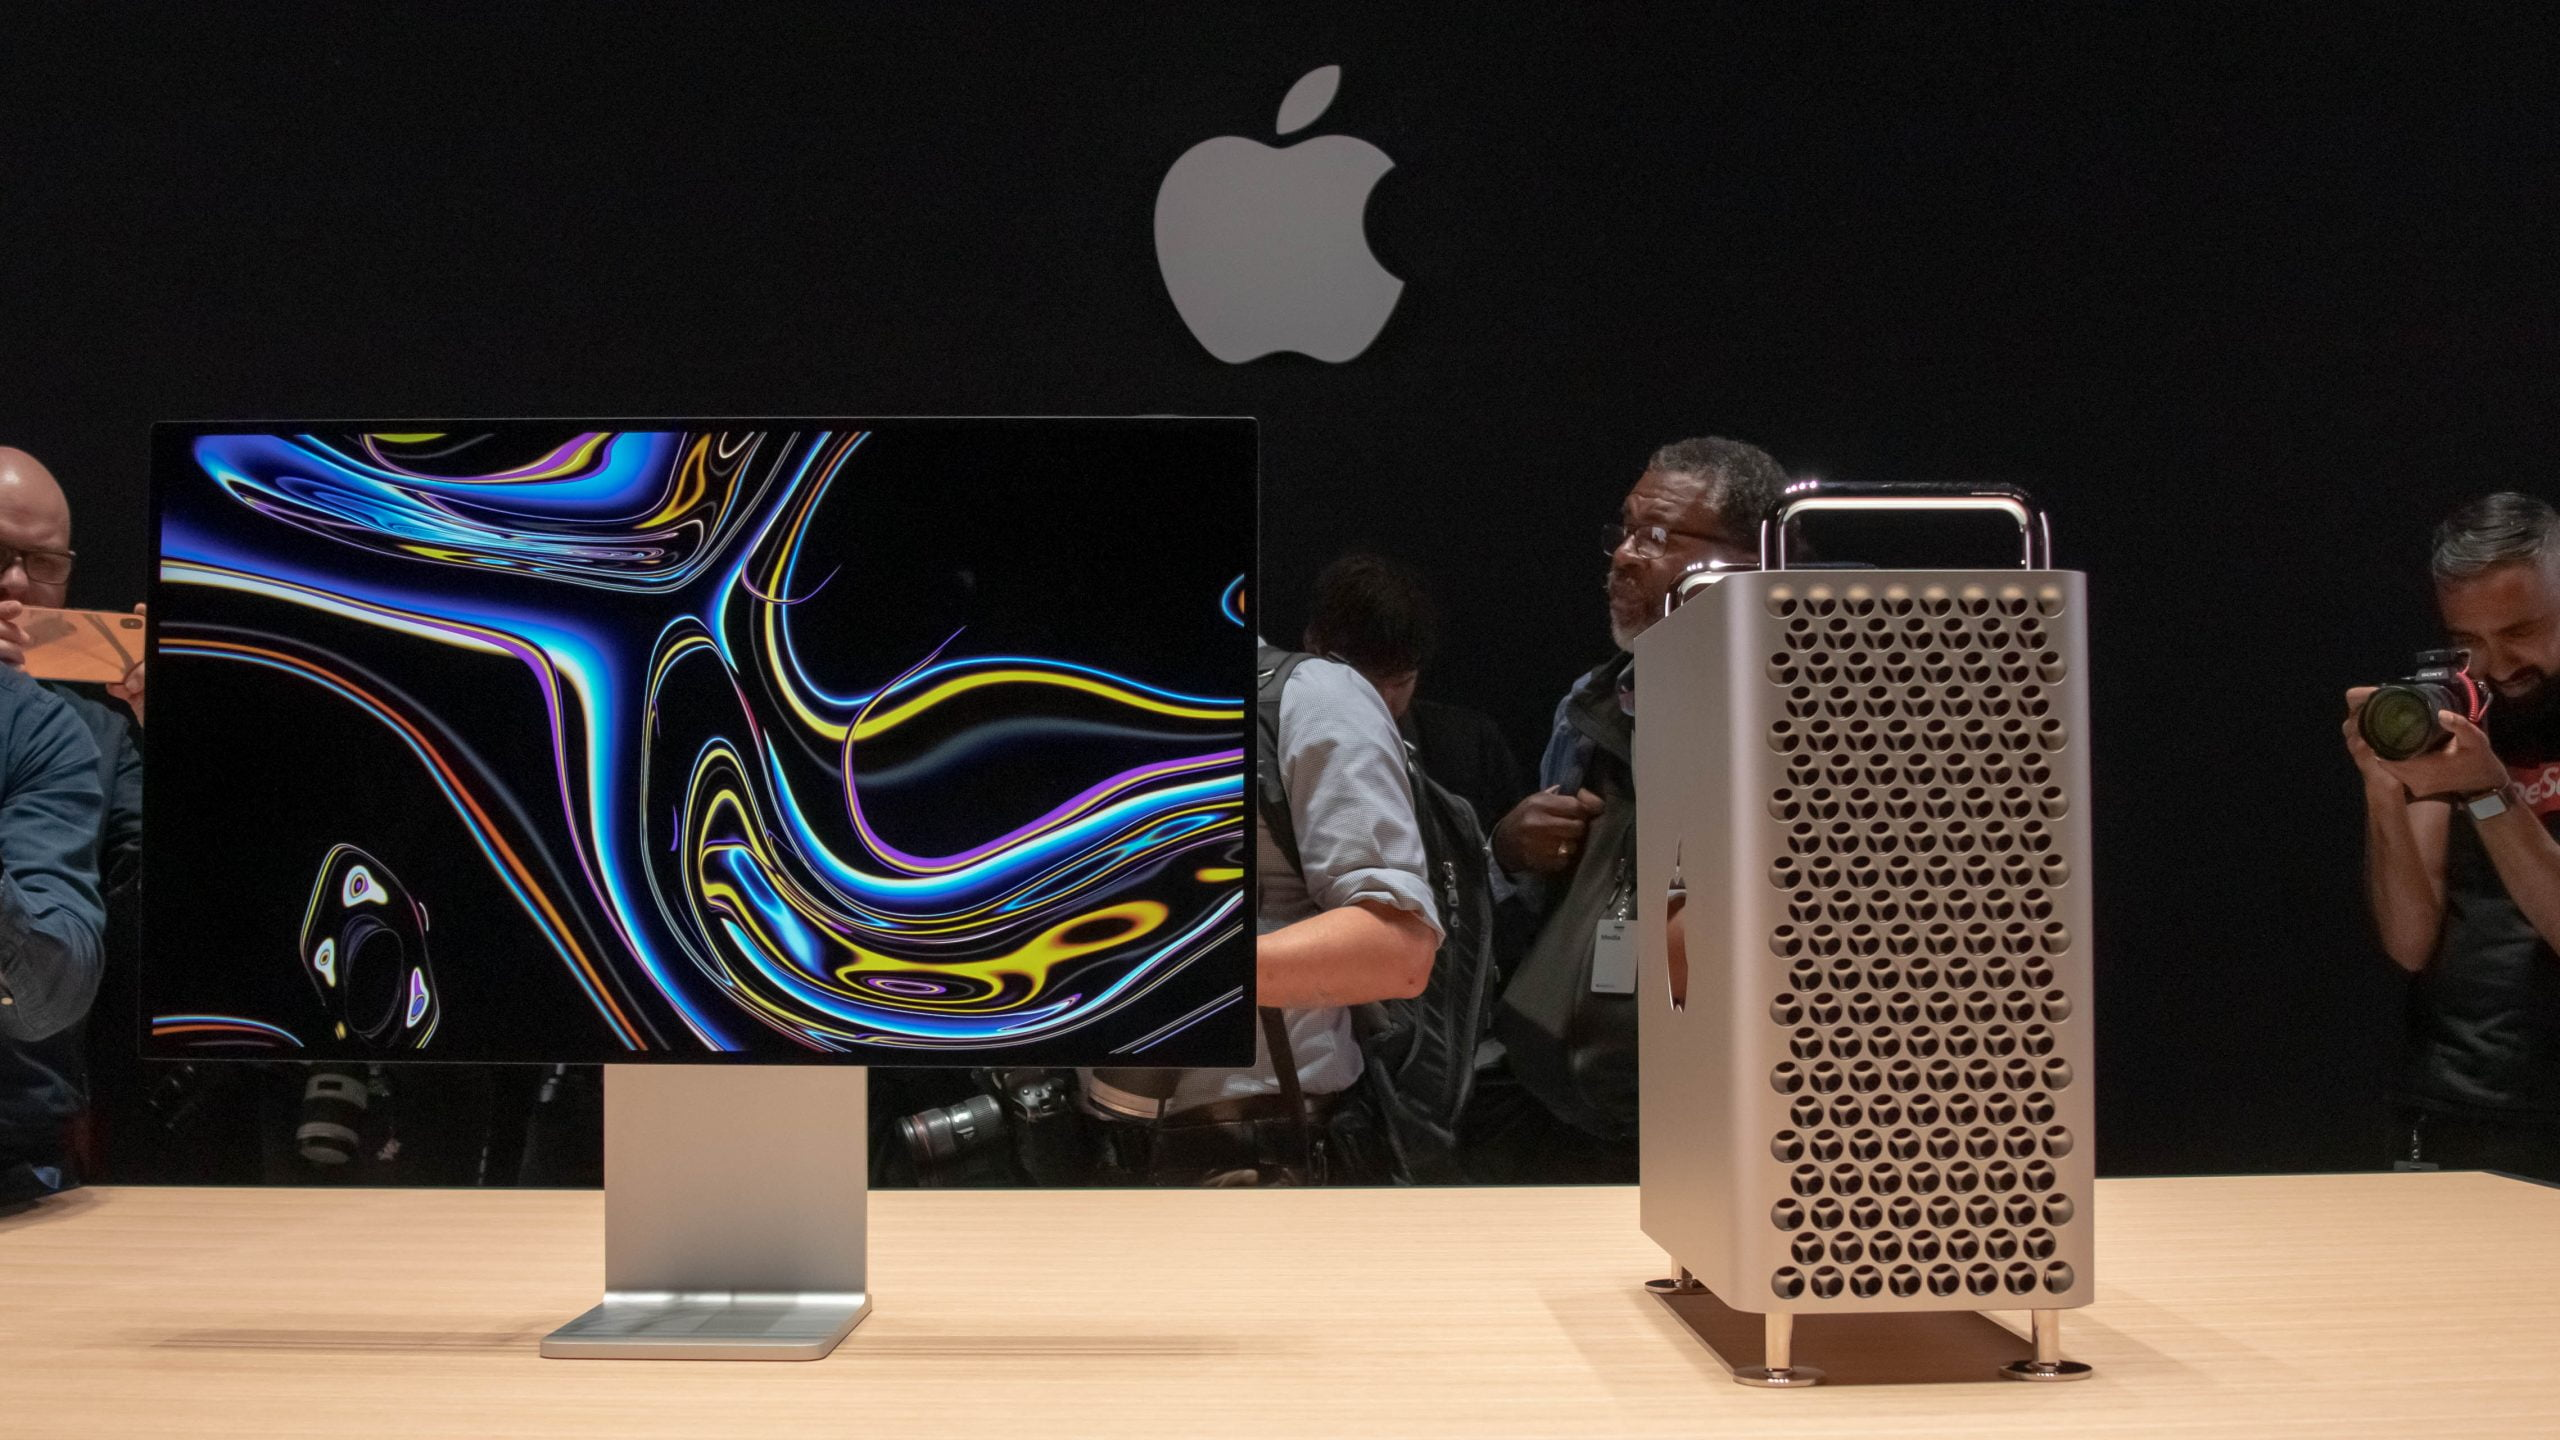 The Mac for gamers could arrive in 2020